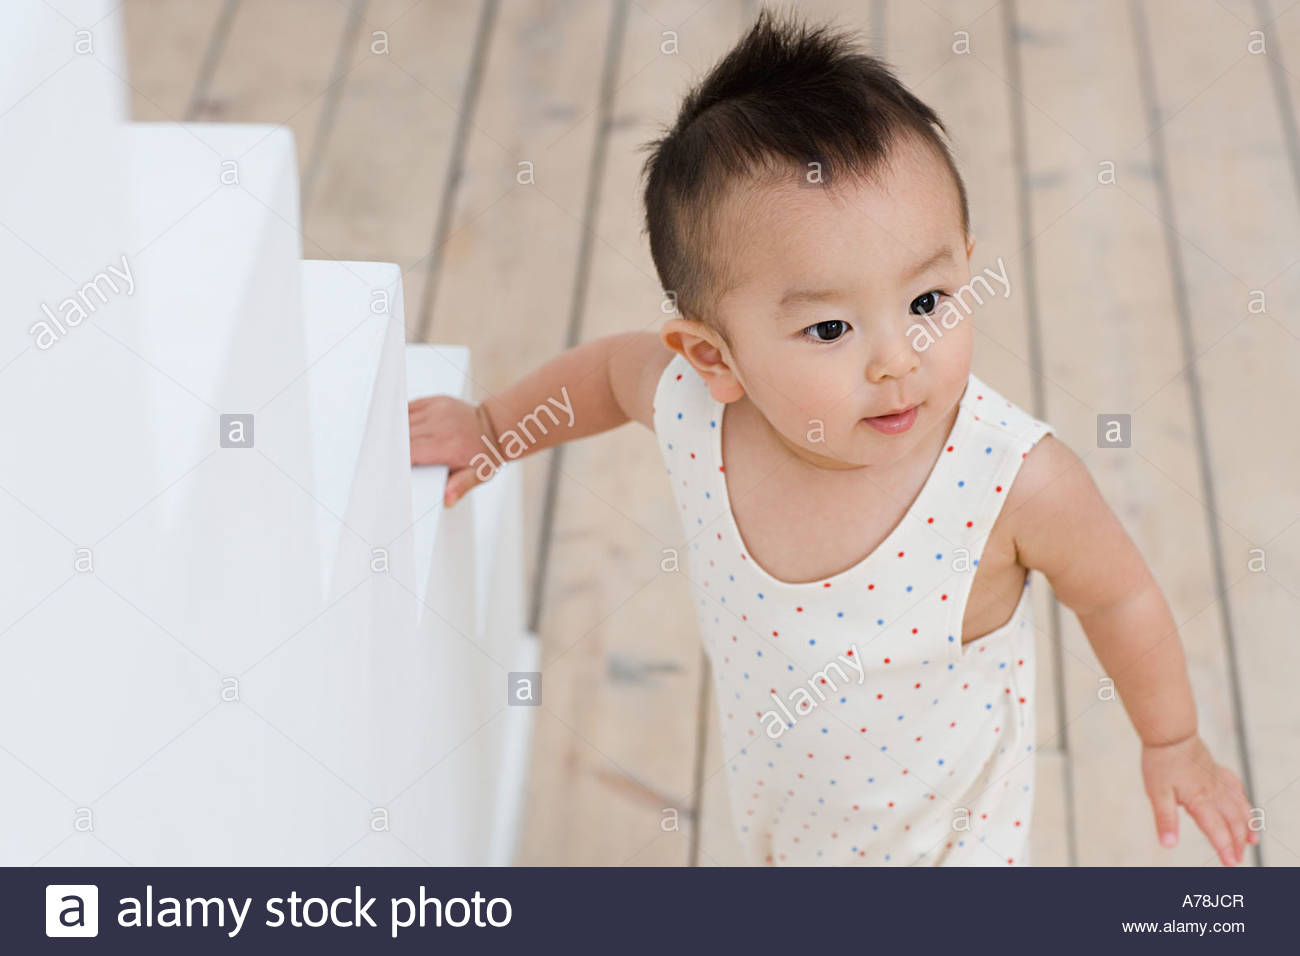 Baby standing near steps - Stock Image